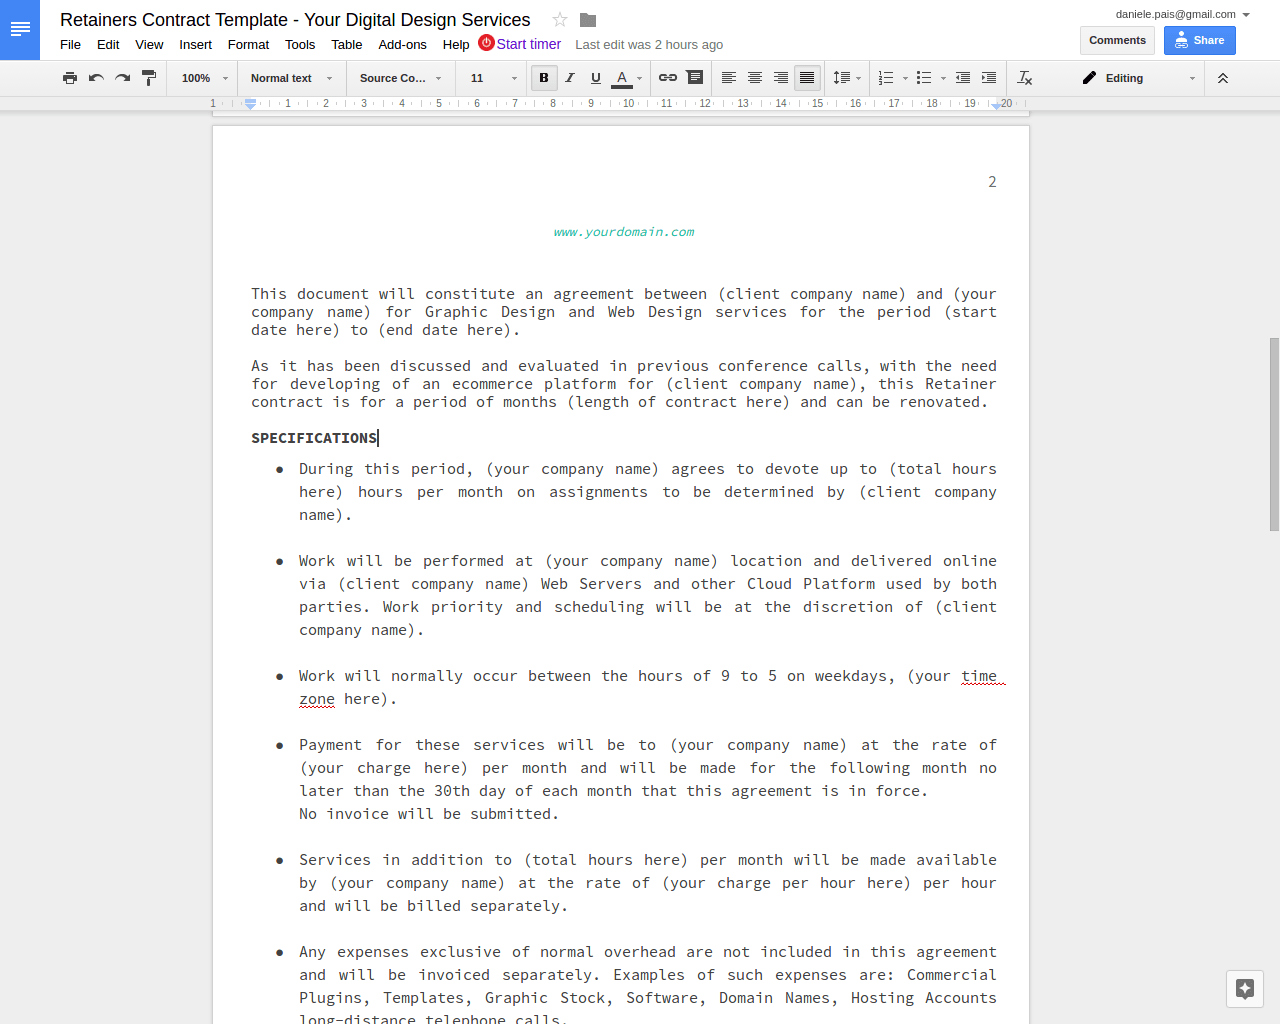 Free to Download Retainers Contract Template – dp: a blog by ...